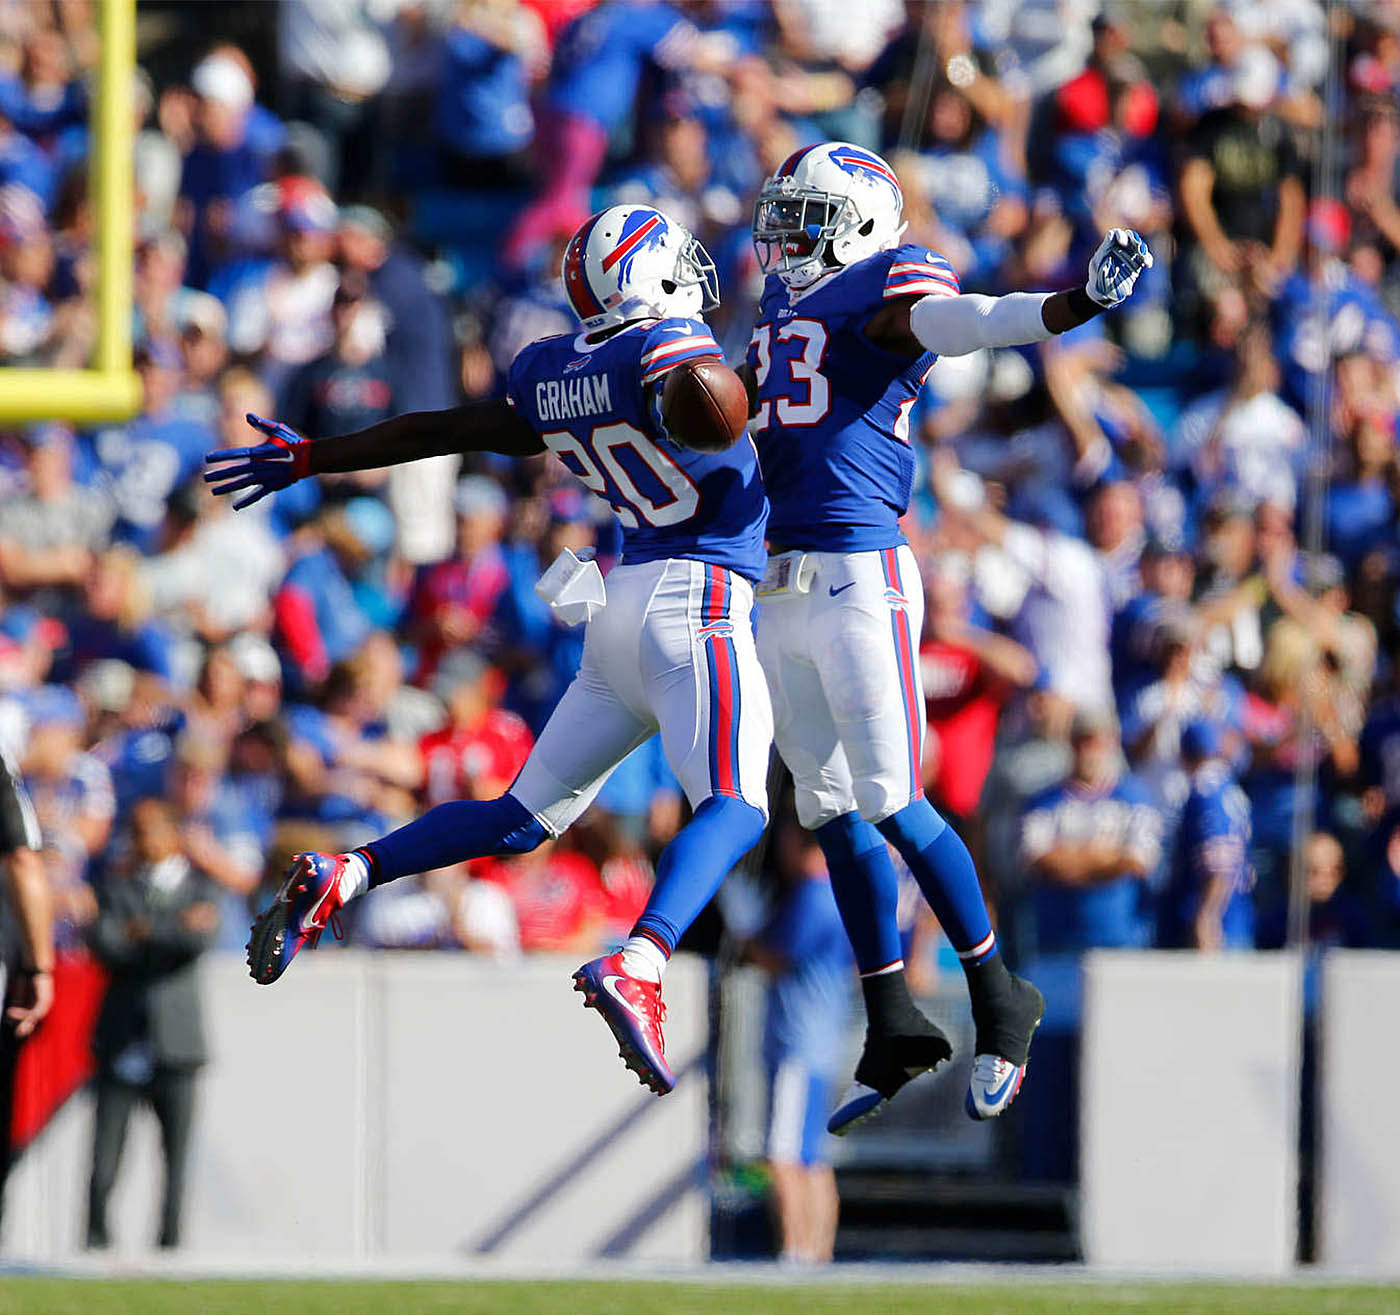 Buffalo Bills Corey Graham celebrates his interception with teammate Aaron Williams during the fourth quarter at New Era Field in Orchard Park, Sunday, Sept. 25, 2016. (Mark Mulville/Buffalo News)